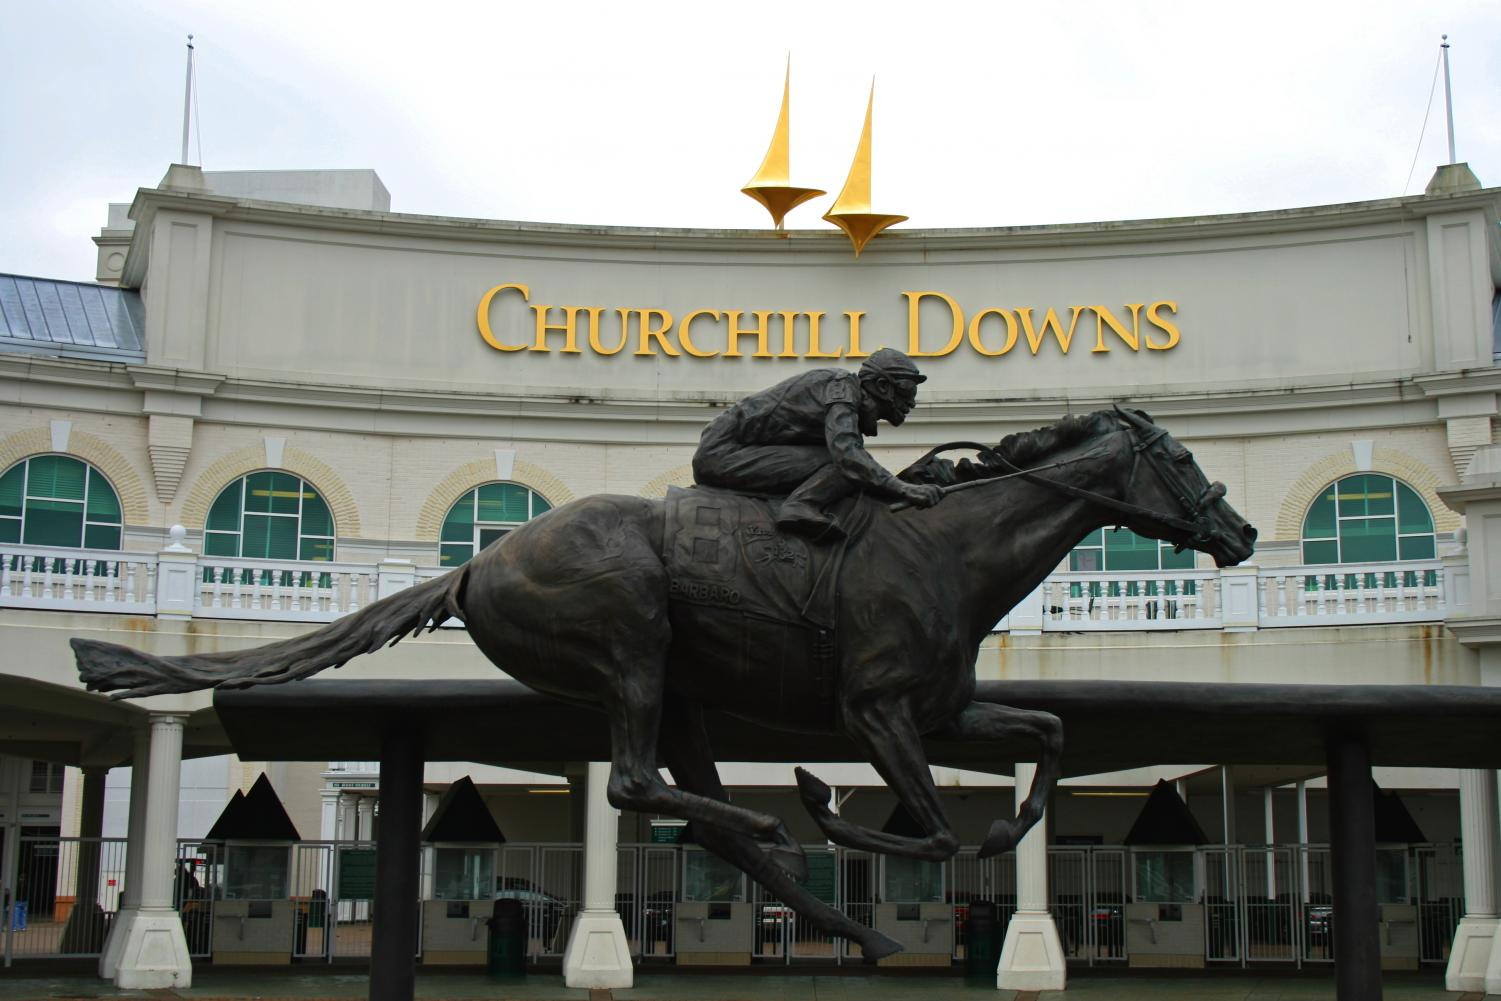 The Kentucky Derby took place on May 5, 2018 at Churchill Downs.